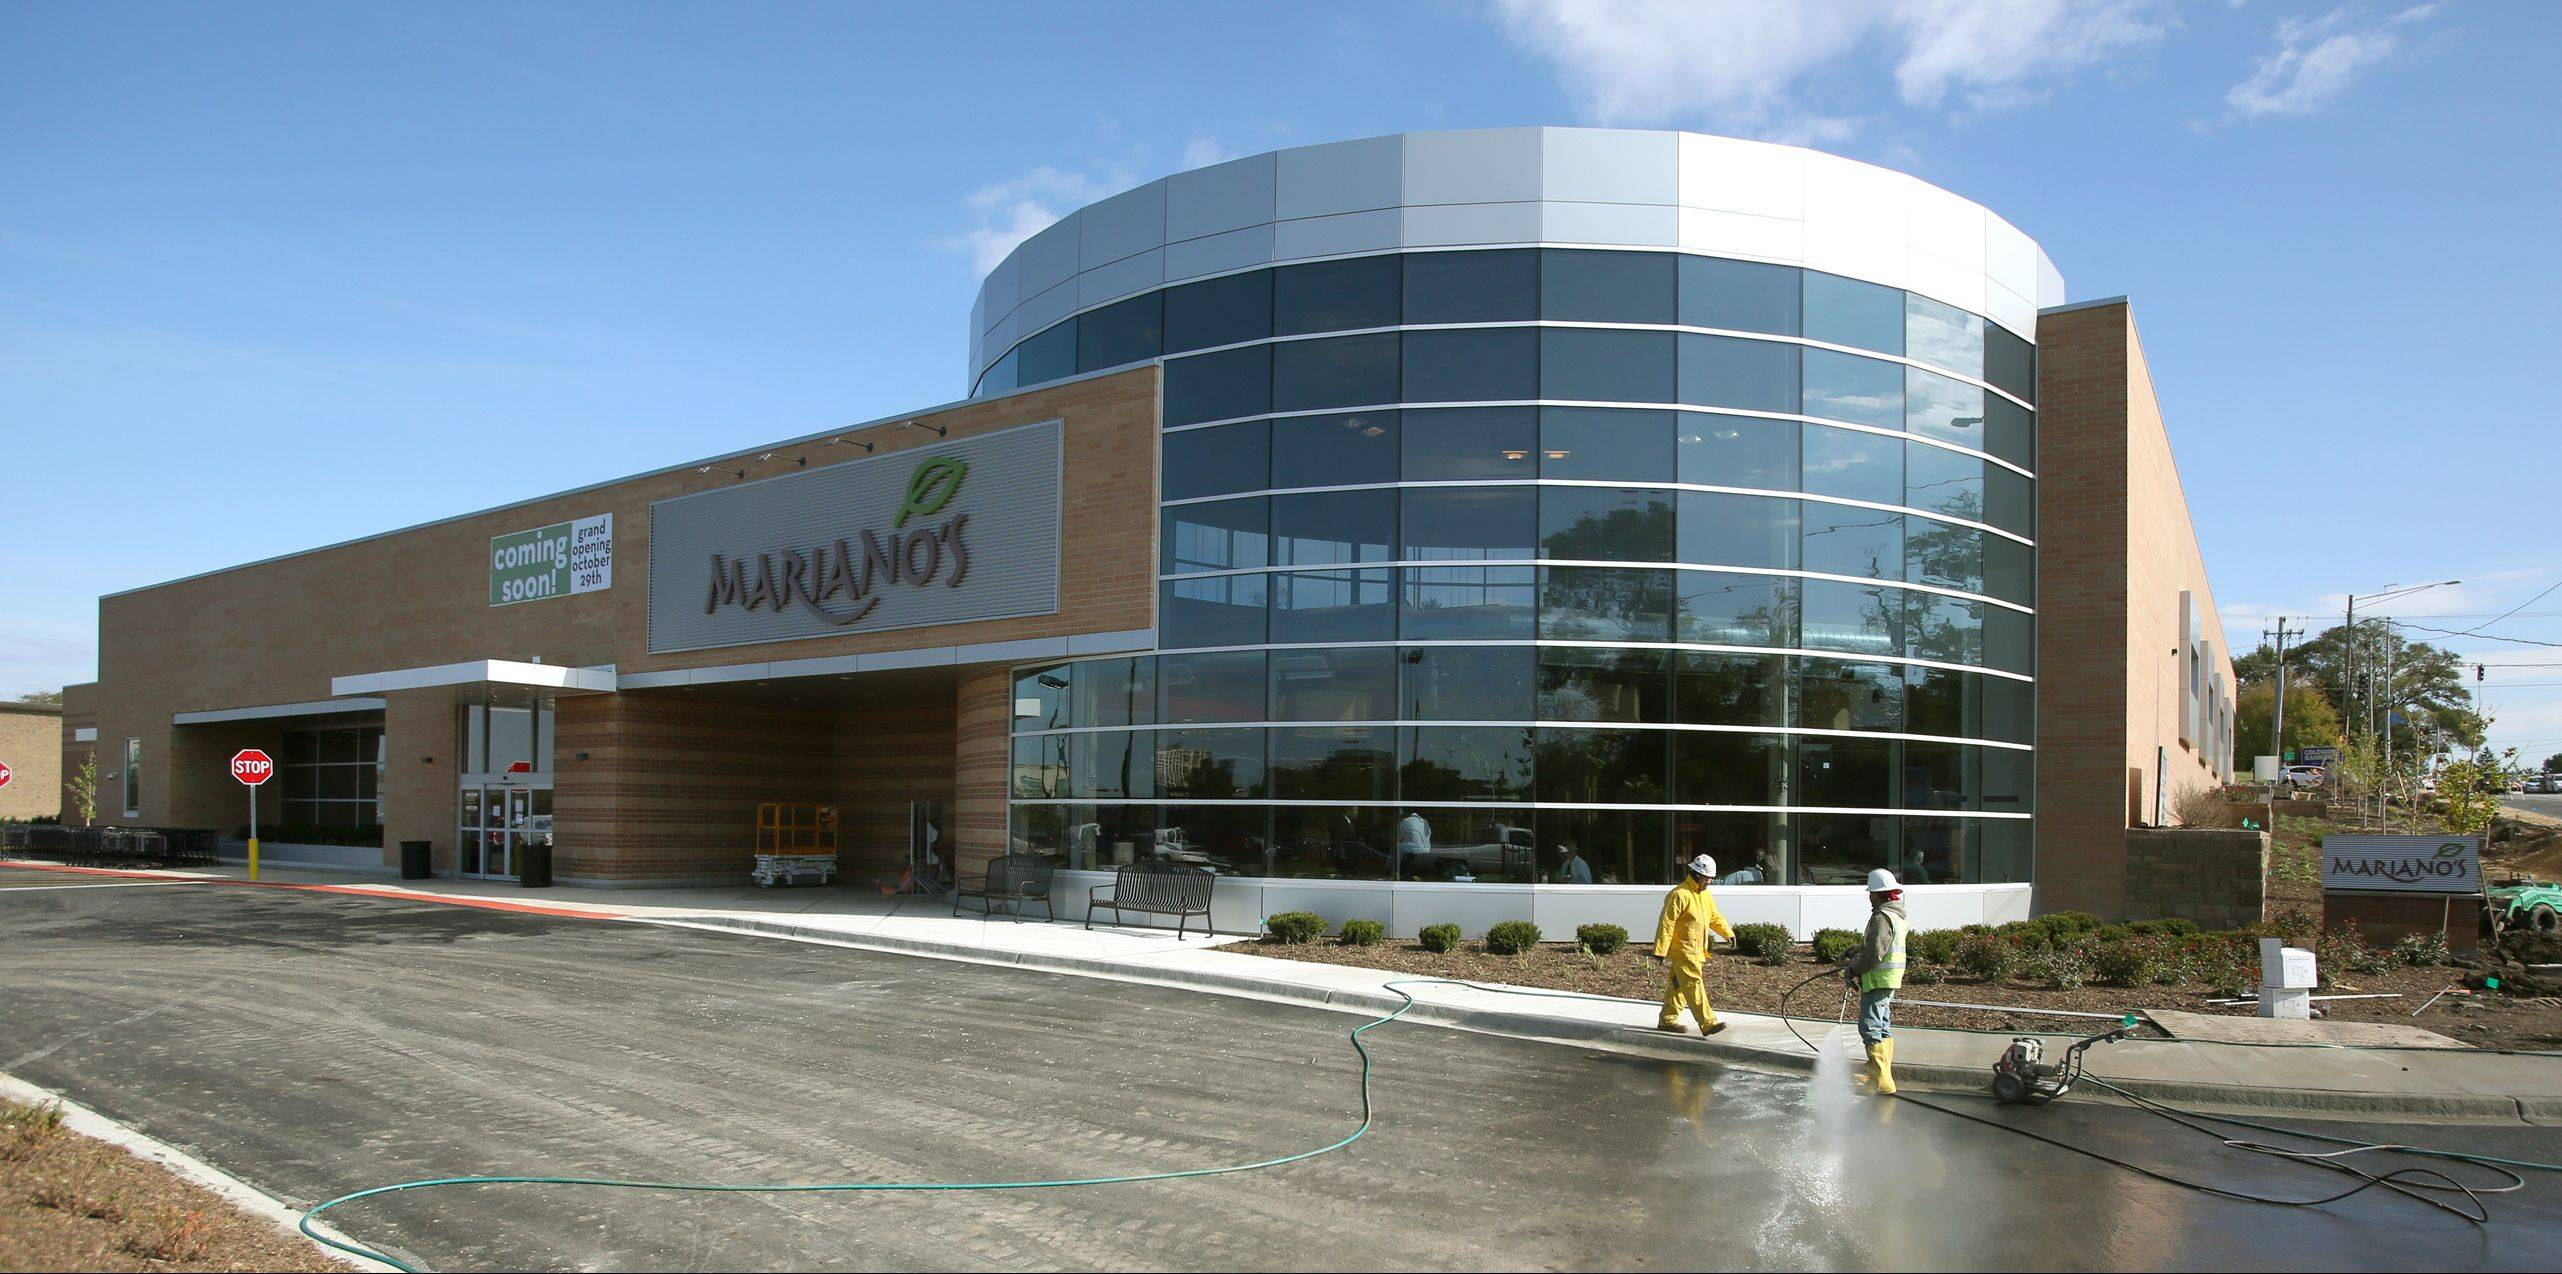 Last-minute preparations are have begun ahead of Mariano's Fresh Market's Wheaton debut on Tuesday.